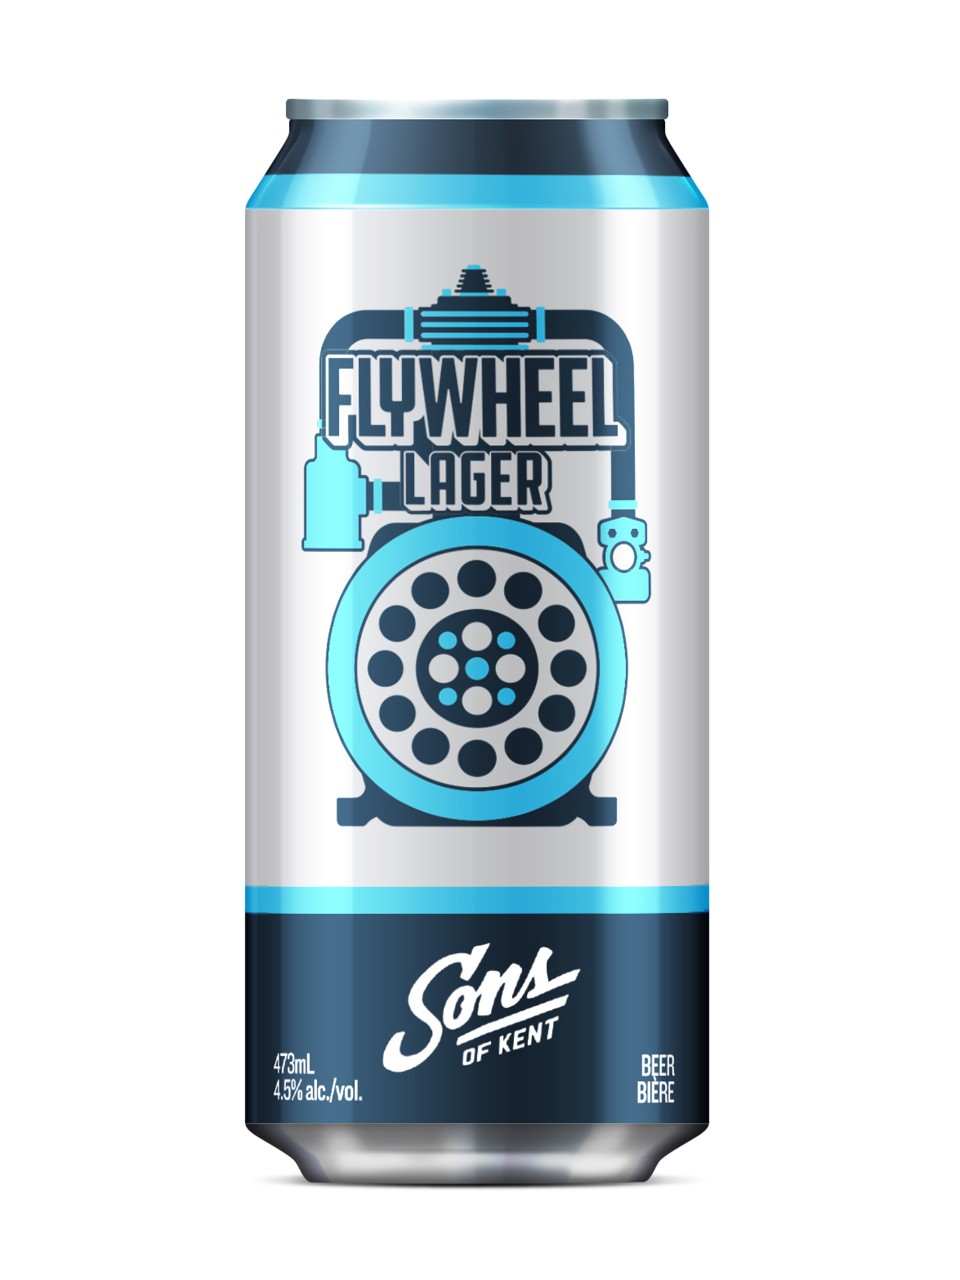 Sons of Kent Flywheel Blonde Lager from LCBO